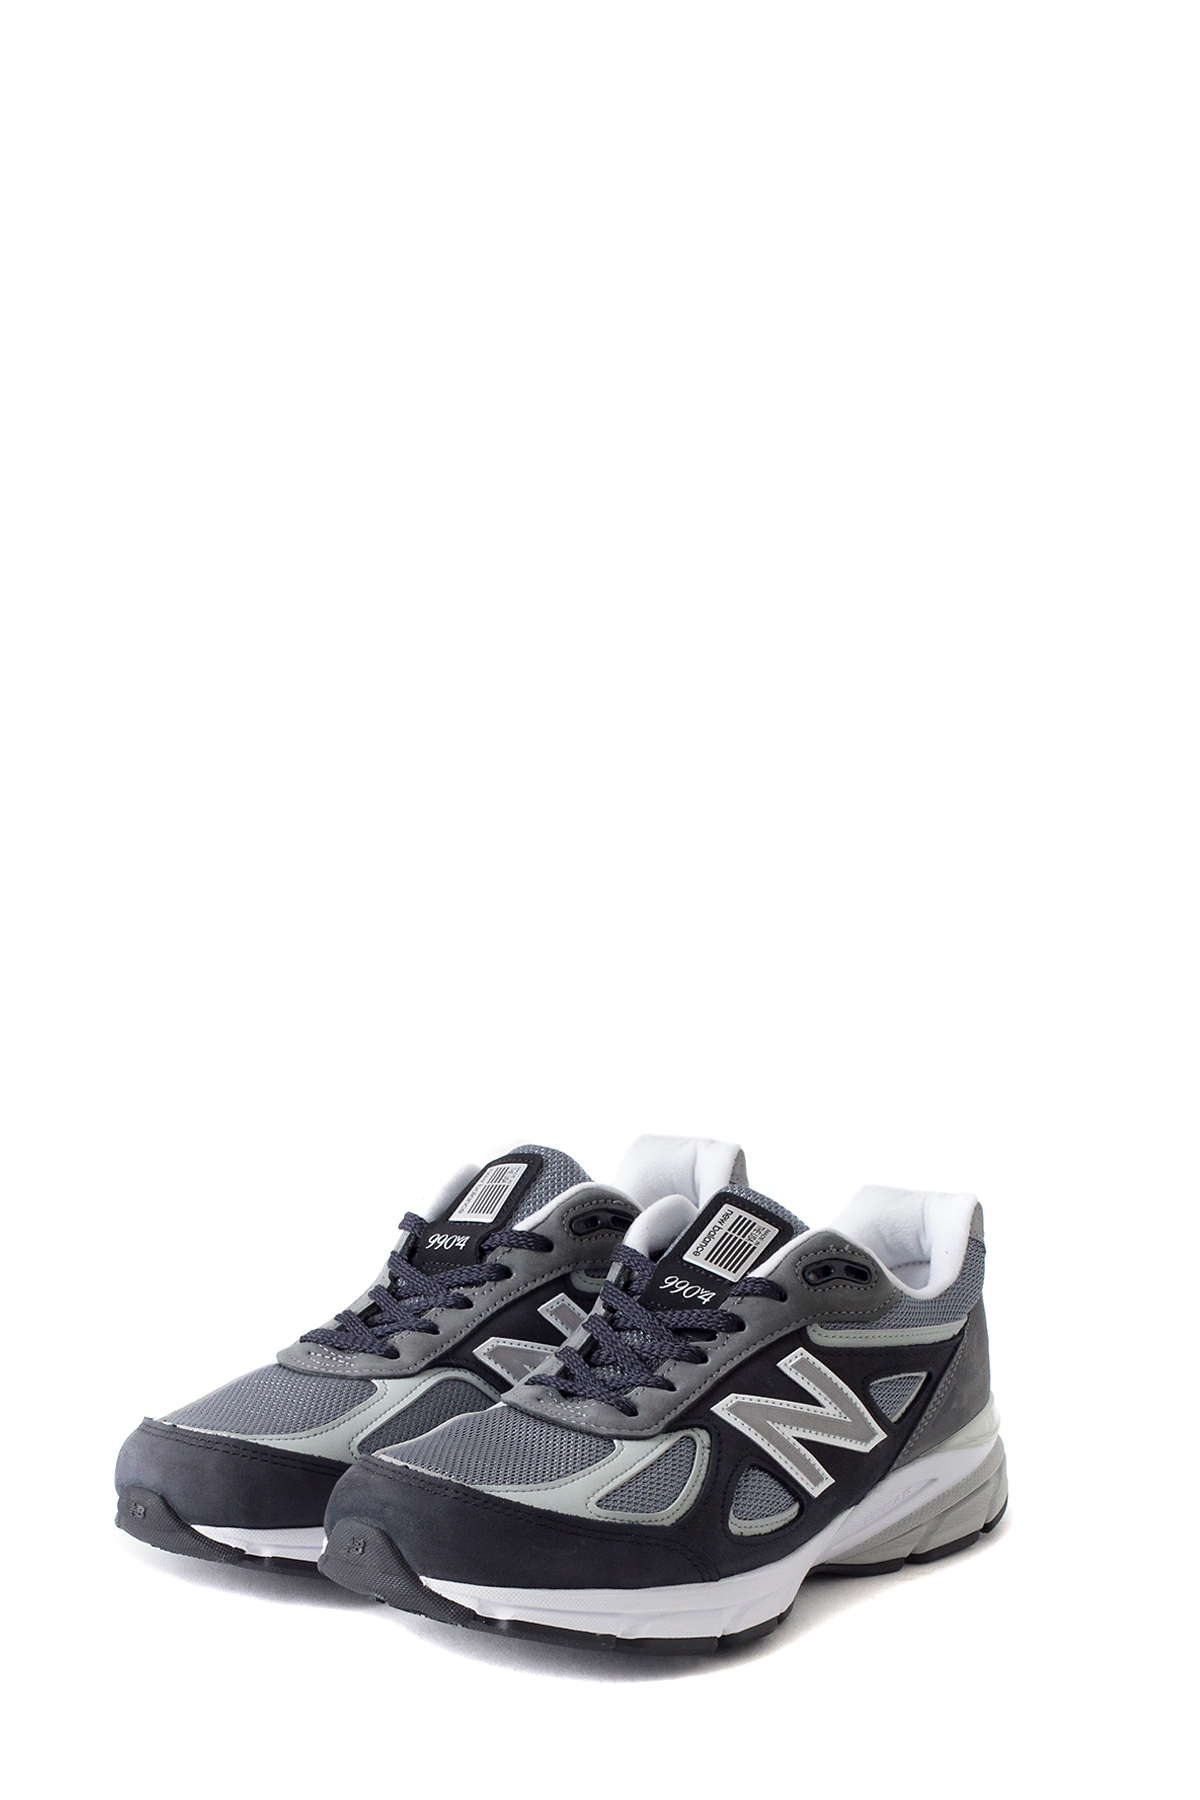 New Balance : M990XG4 (Grey)